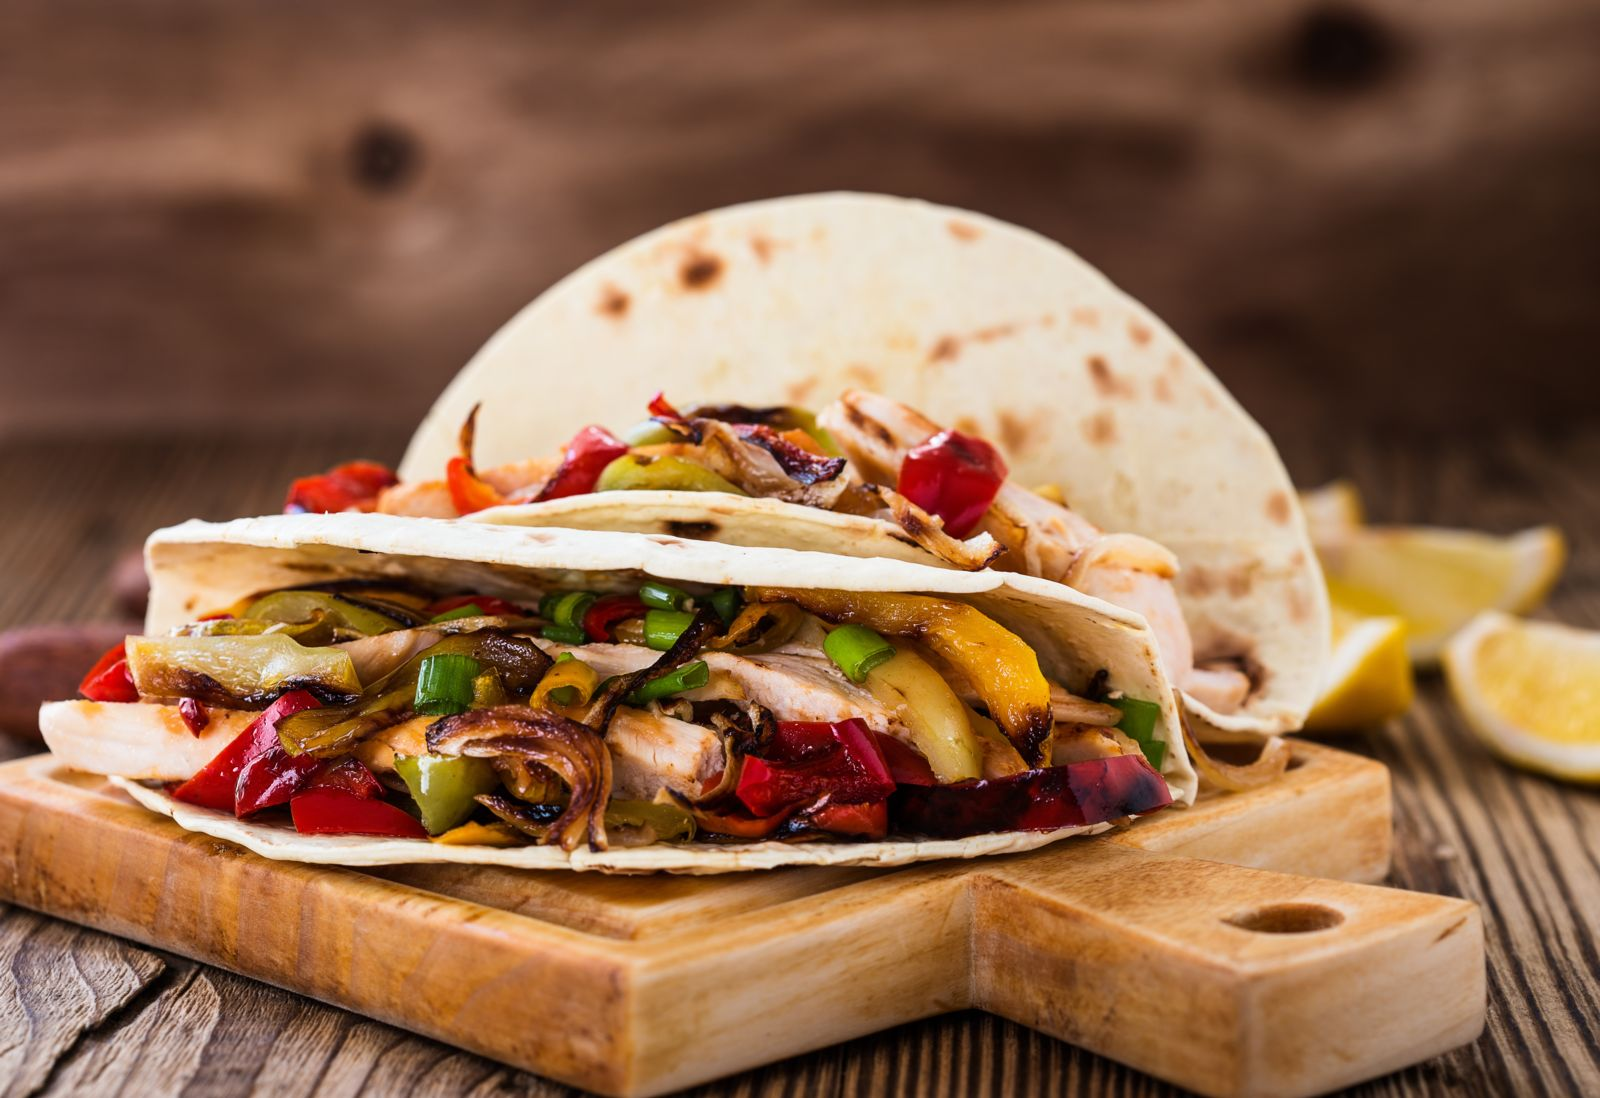 Tacos are a great dinner option for people with diabetes!